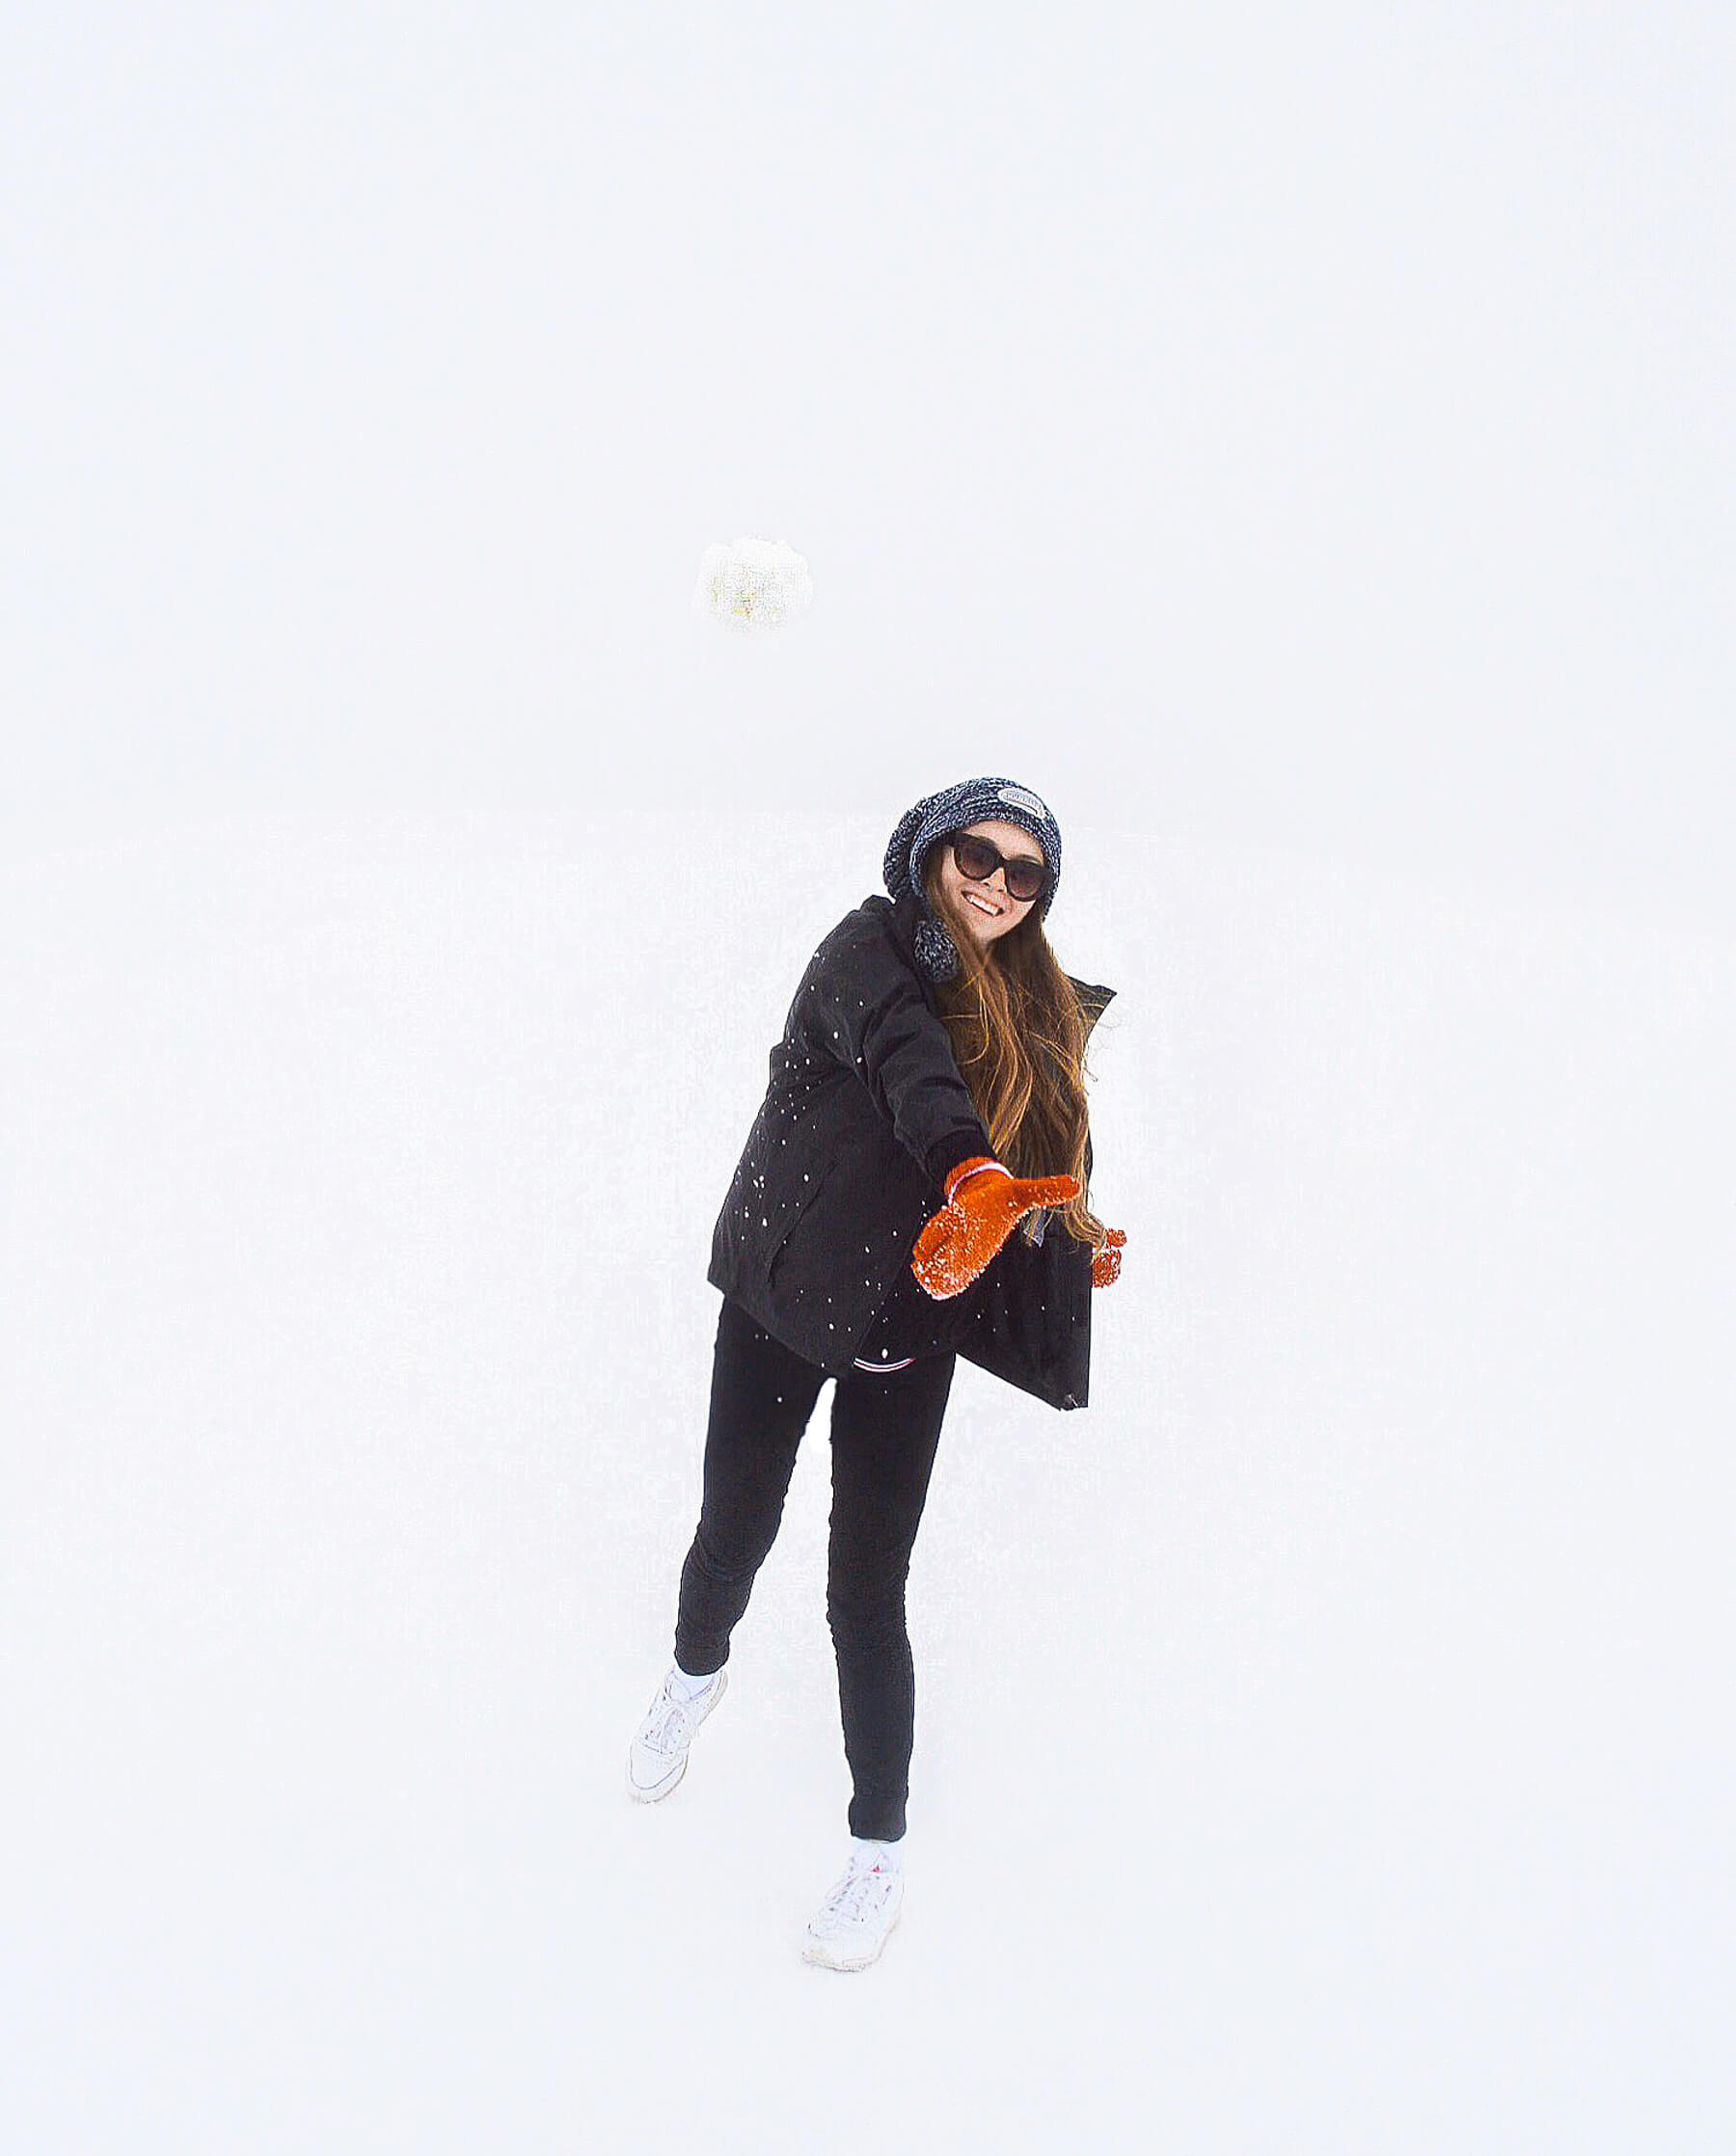 Red haired girl throwing snow ball at the camera